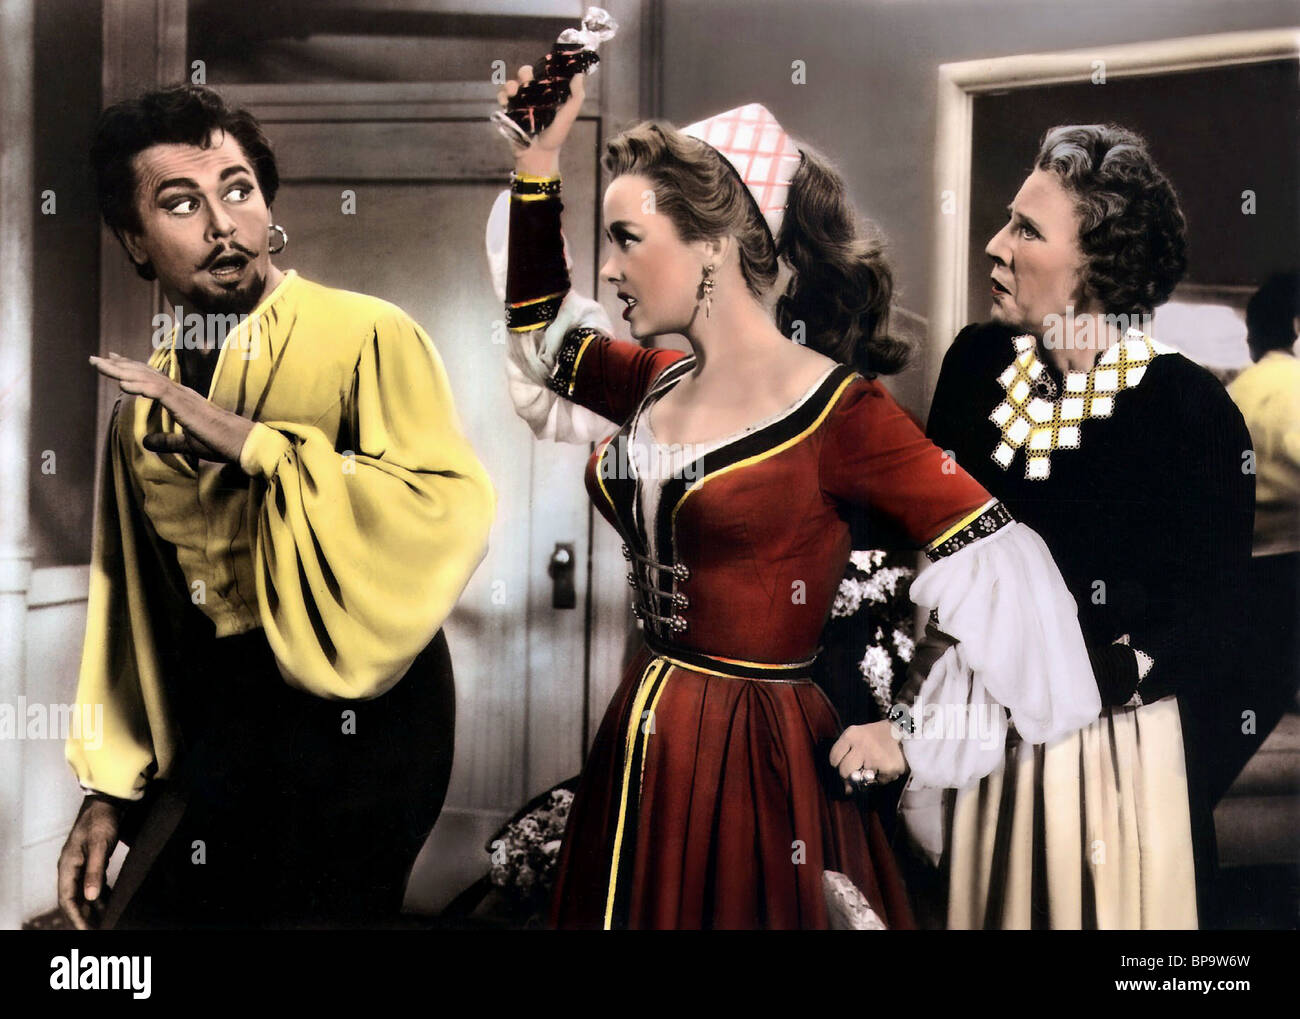 HOWARD KEEL & KATHRYN GRAYSON KISS ME KATE (1953) - Stock Image